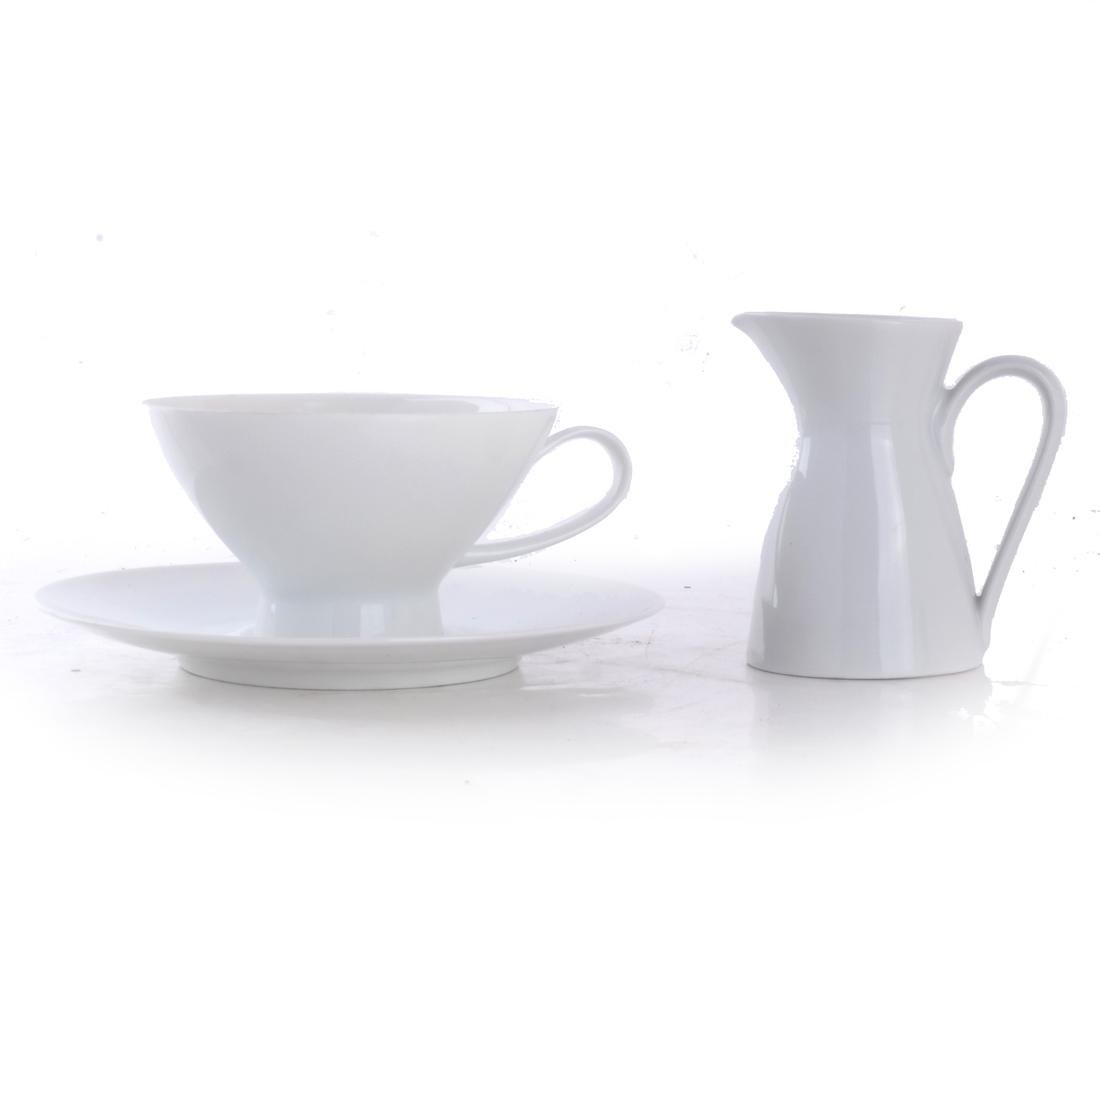 Raymond Lowery Design for Rosenthal, 15 Pieces - 3